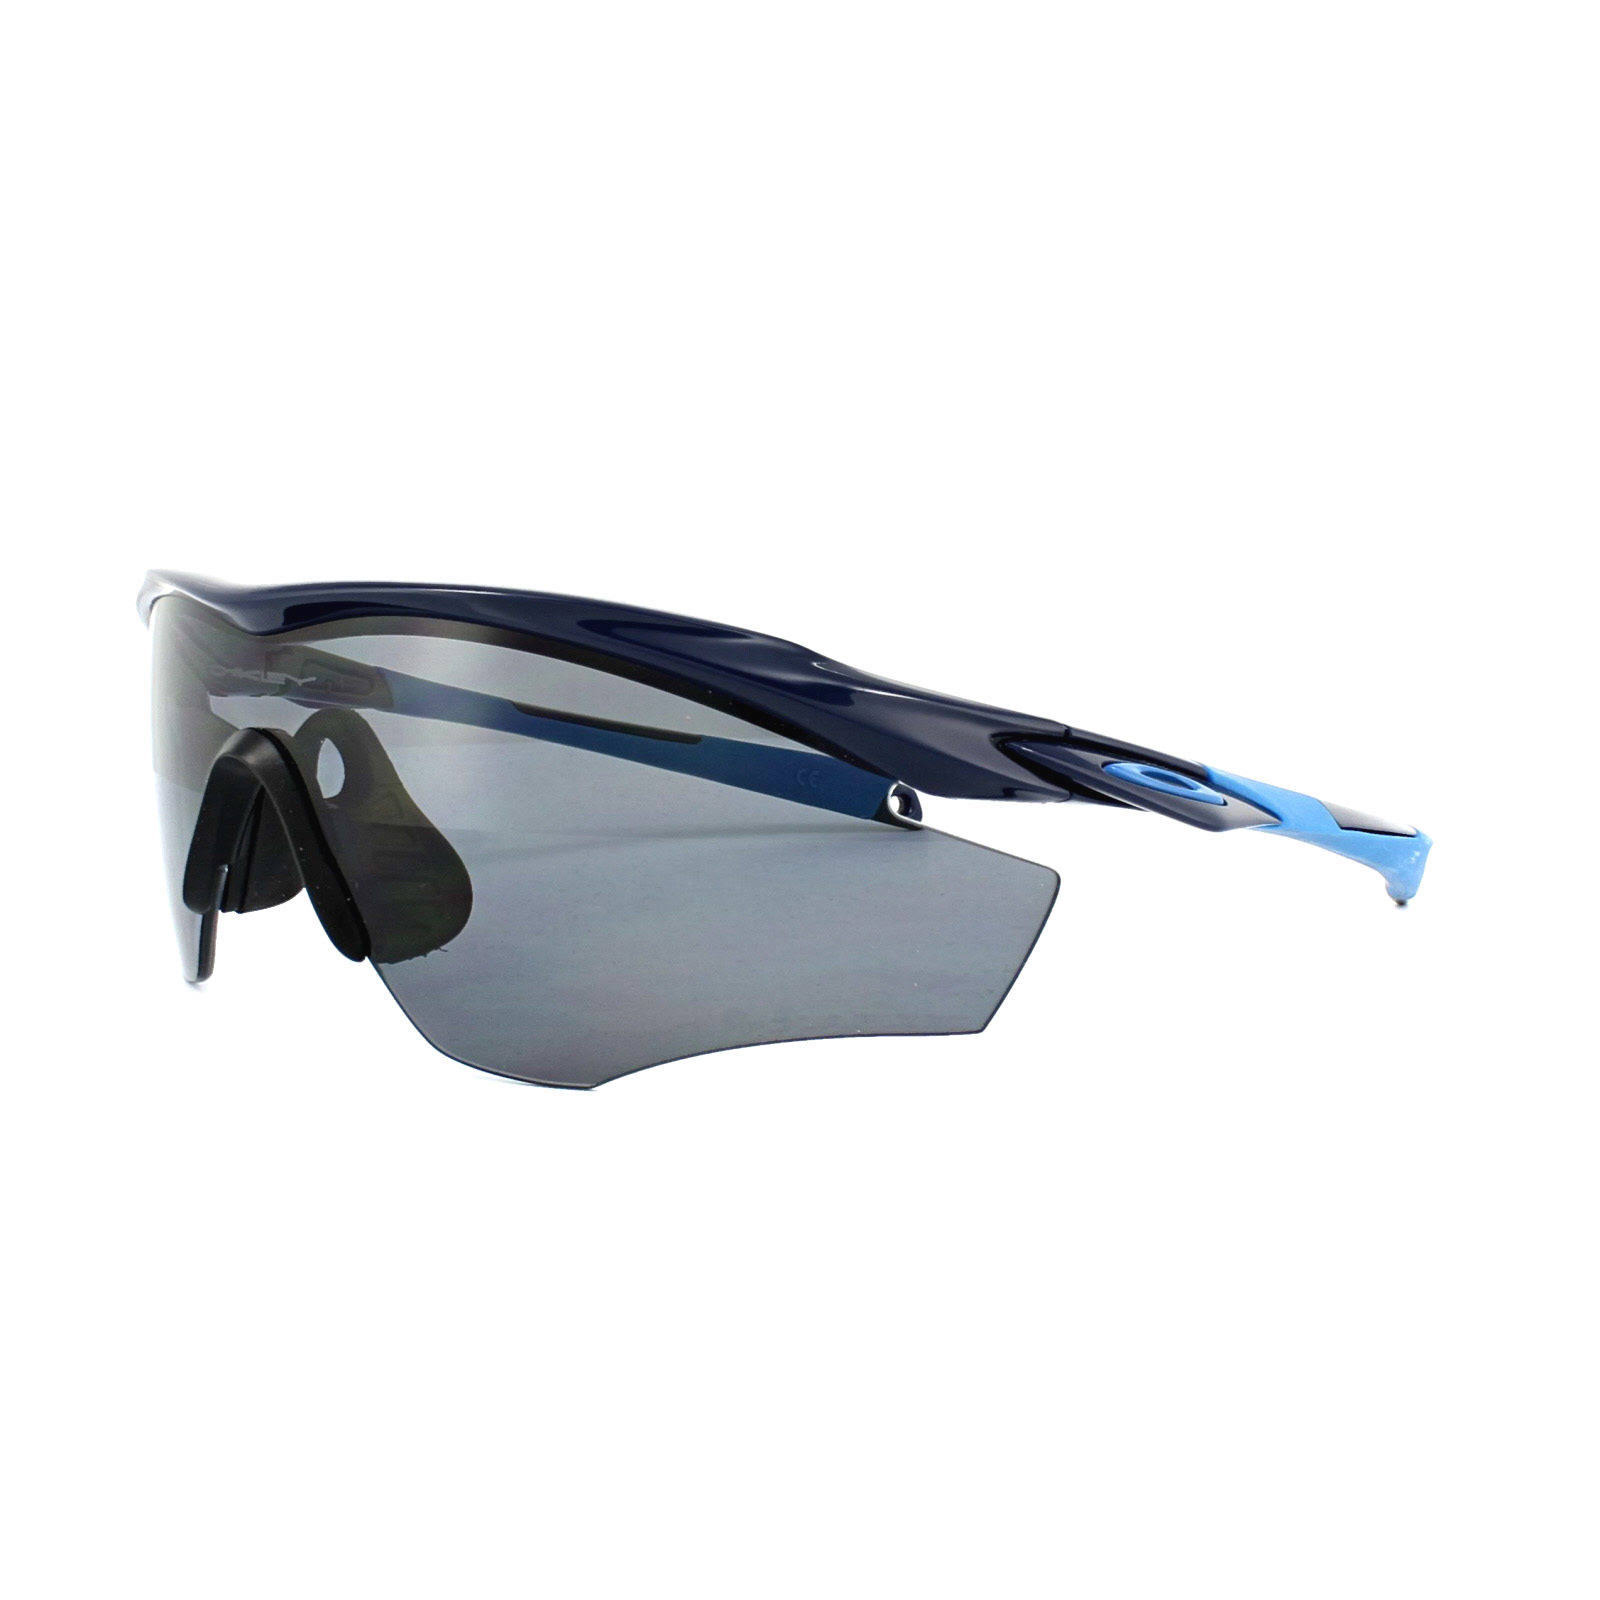 Navy FrameLens Frame grigio SunglassesPolarized M2 Polarized Oakley rCeWdBox